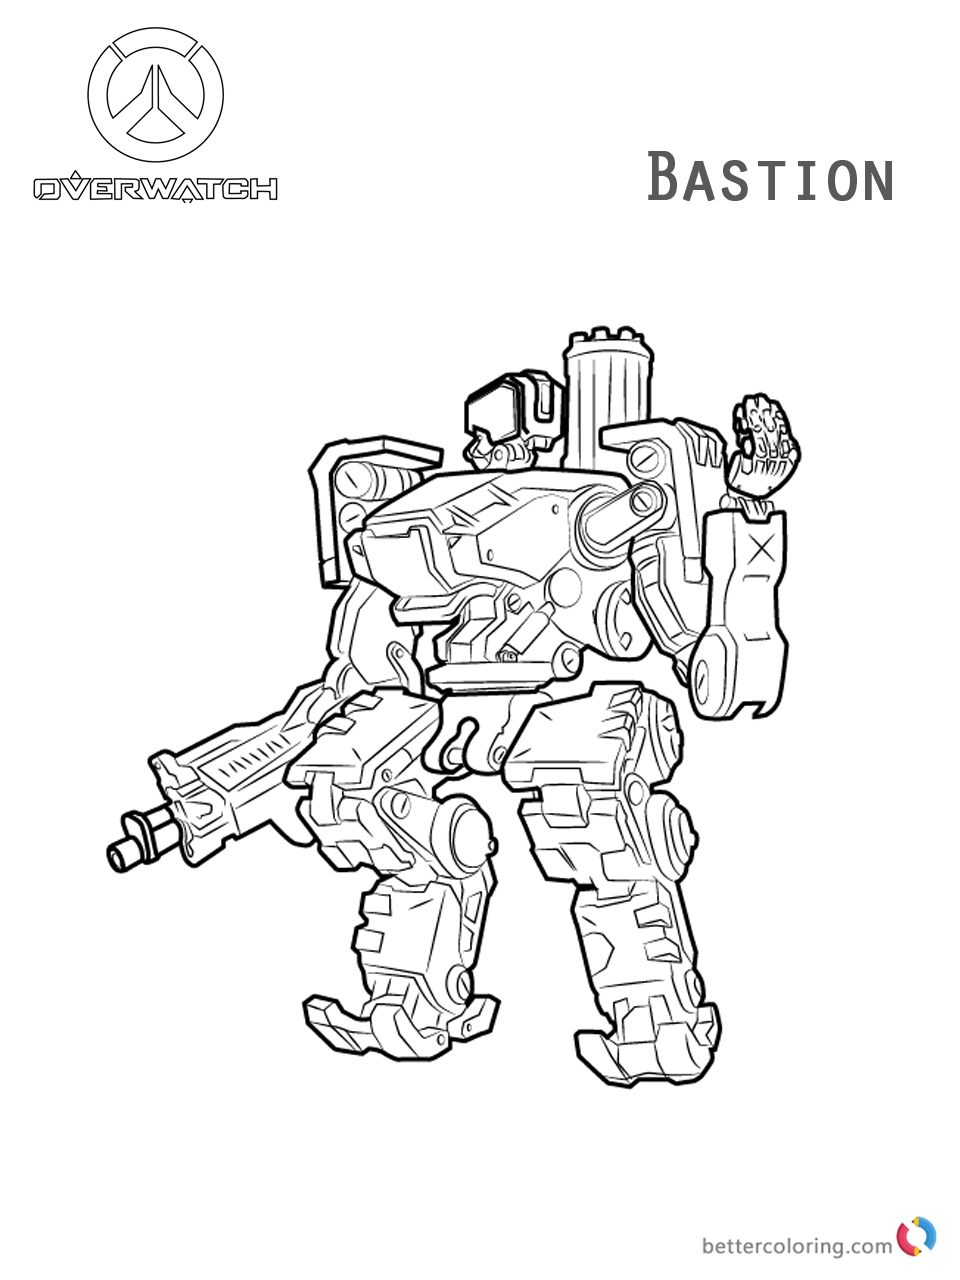 Bastion From Overwatch Coloring Pages Free Printable